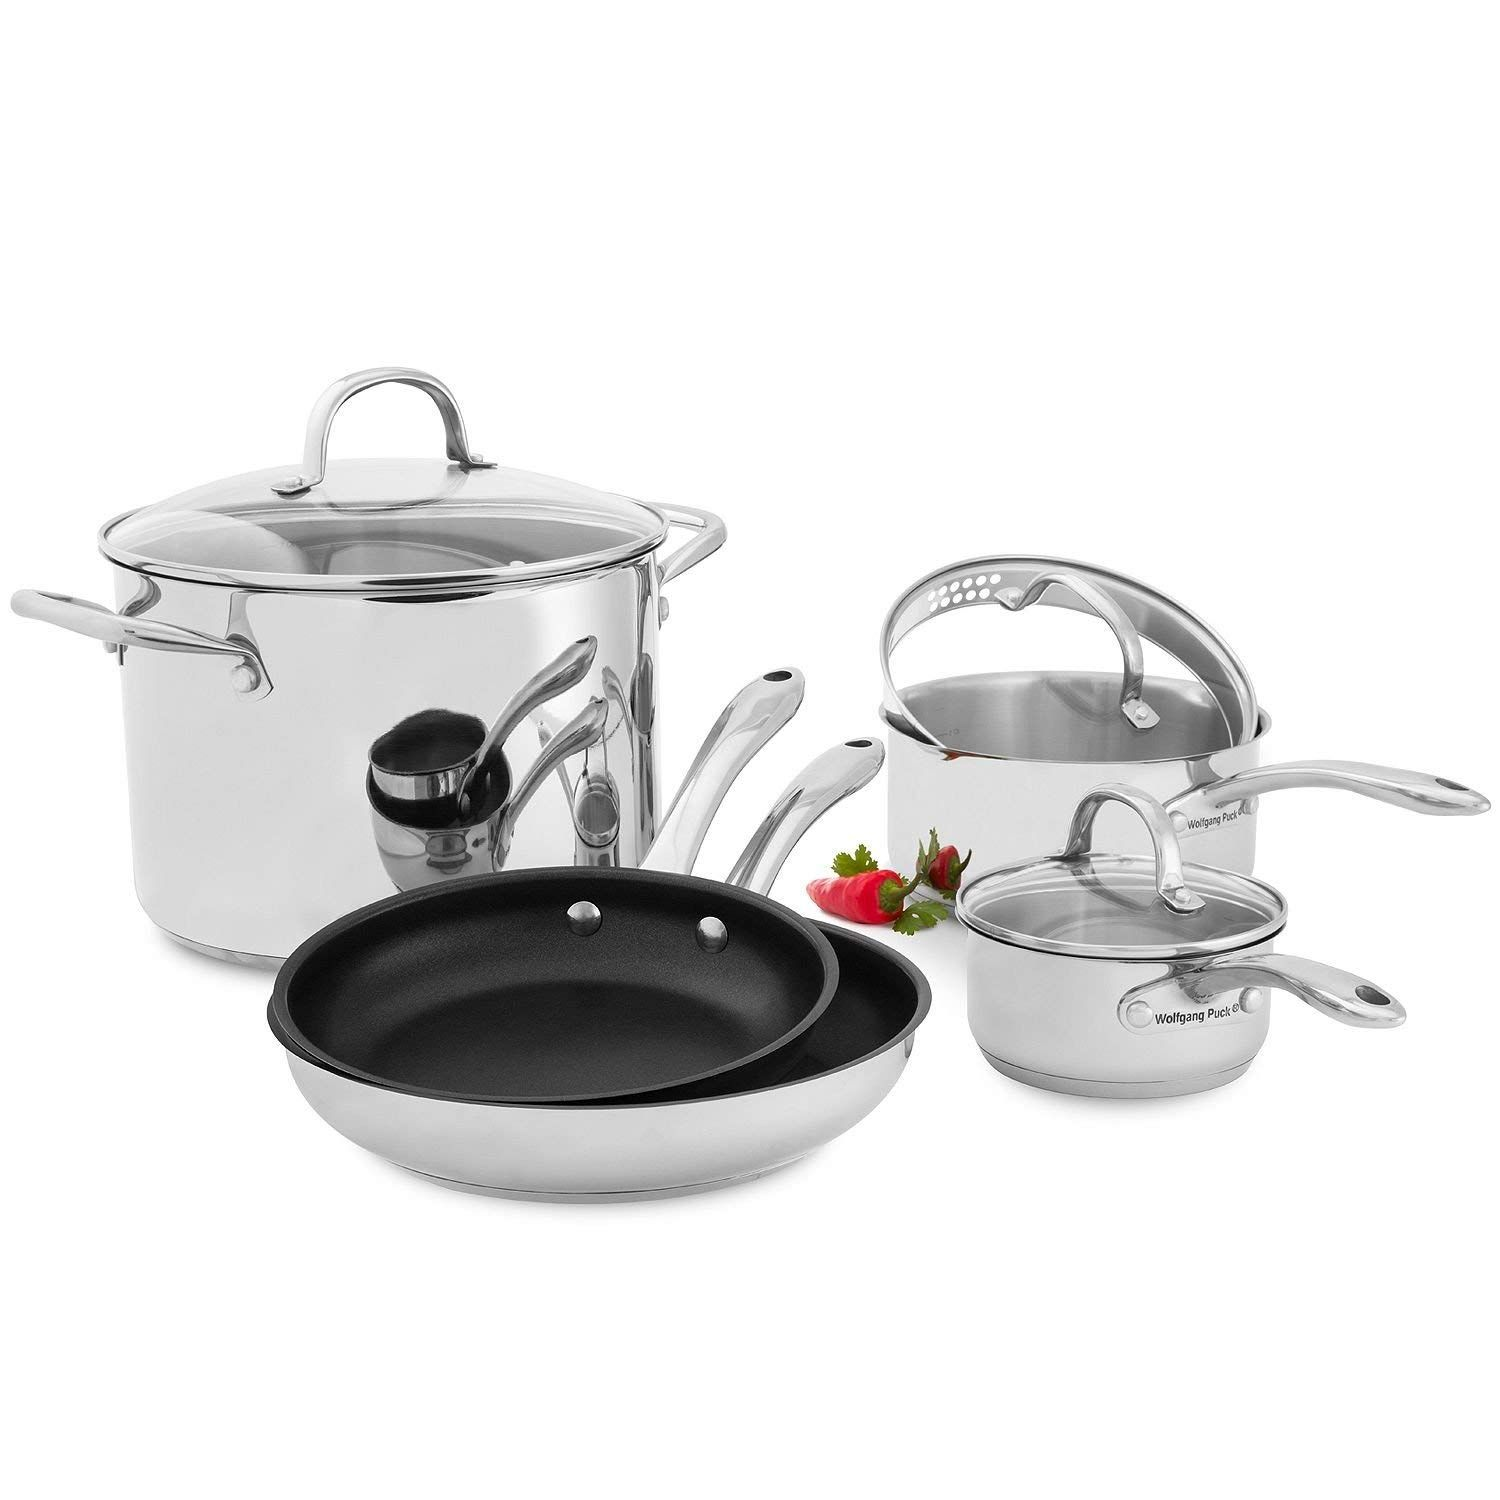 Amazon Com Wolfgang Puck Stainless Steel 18 Pc Cookware Set Home